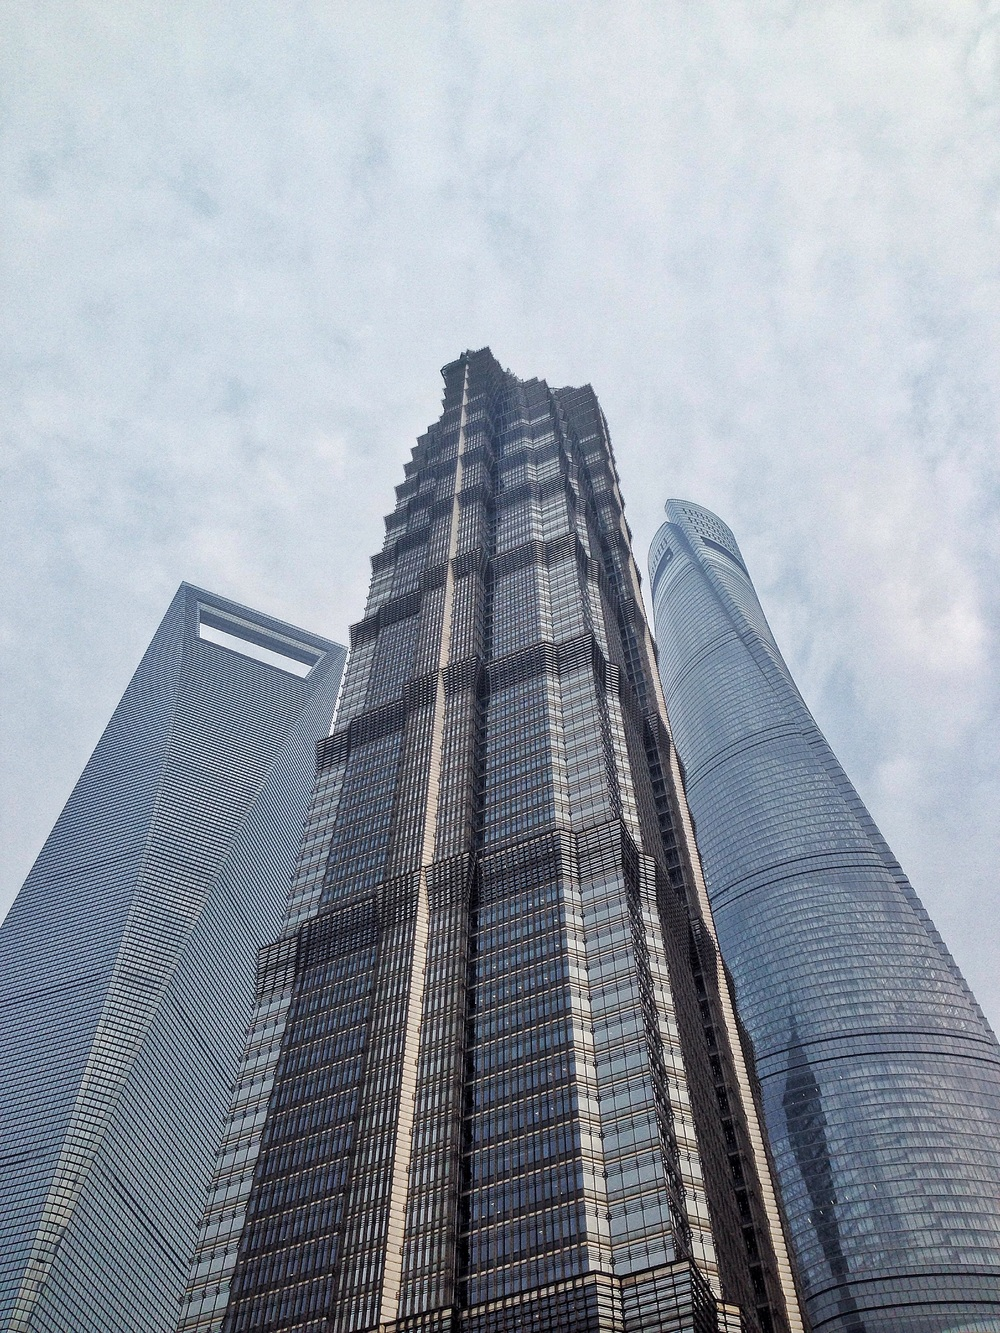 Left to right: Shanghai World Financial Centre, Jinmao Tower & Shanghai Tower.